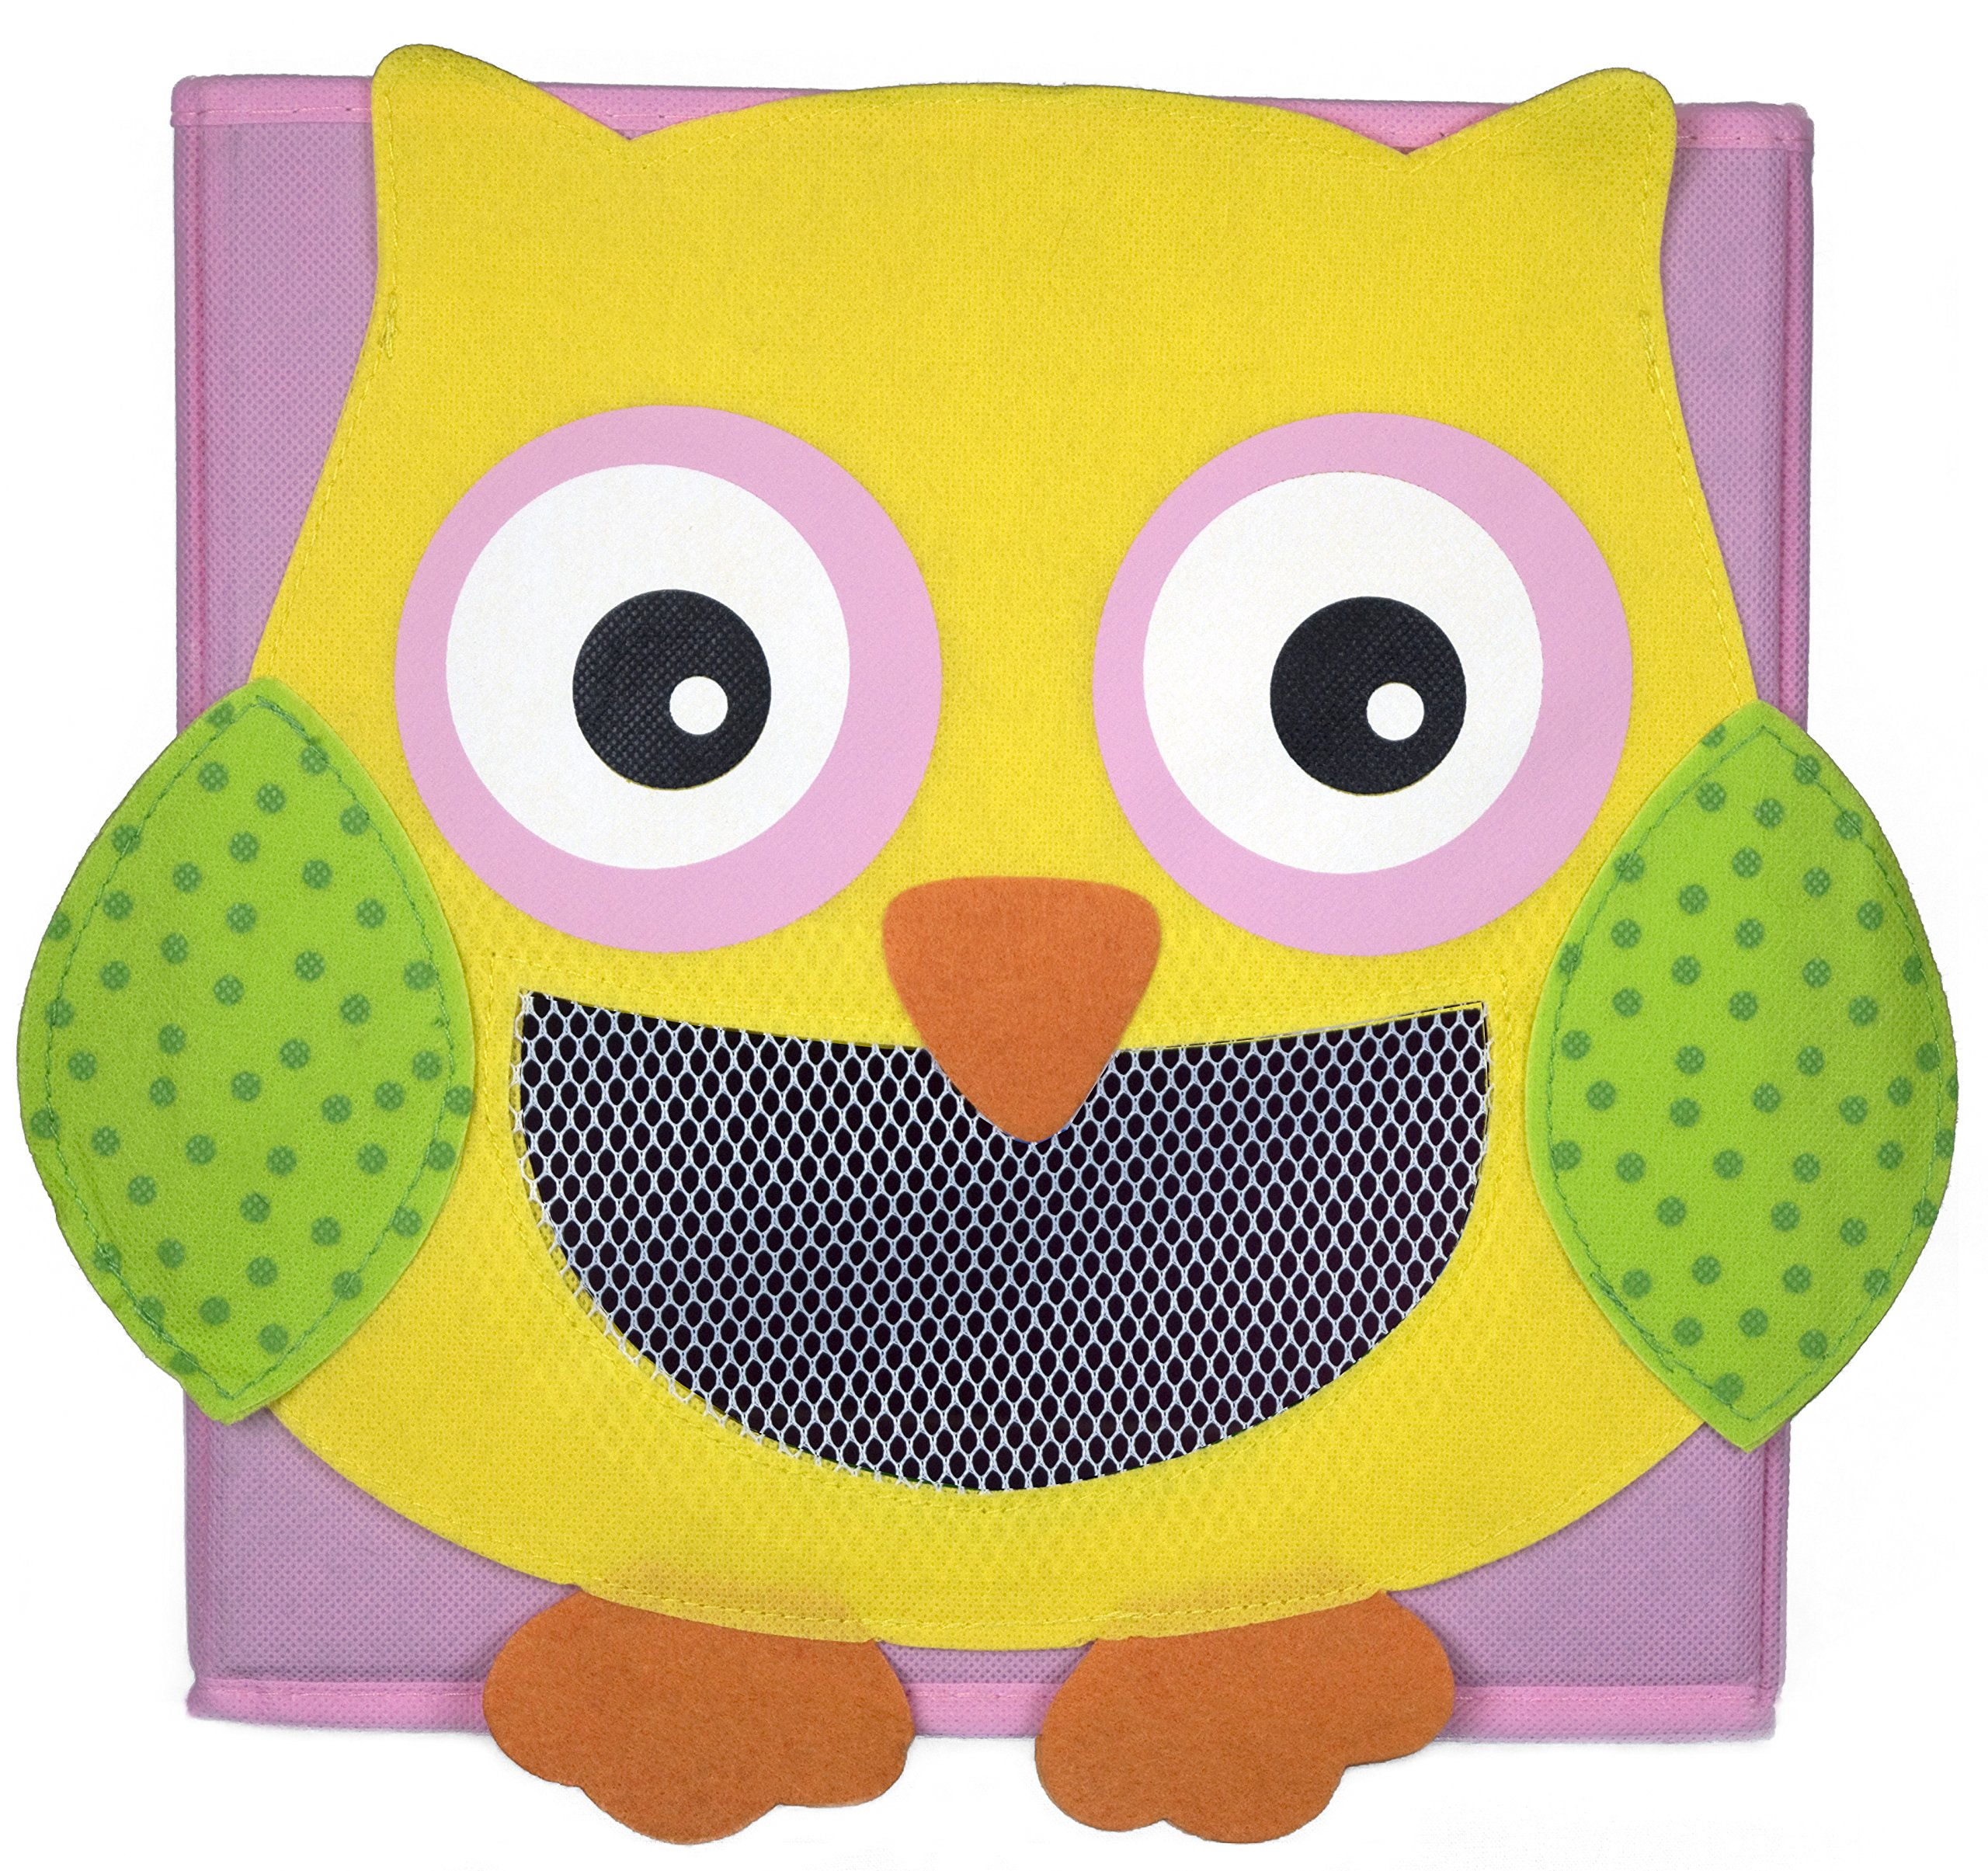 Cute Collapsible Storage Bins w/ View Window- Foldable cubes - 11x11 in. Folding Box (OWL)